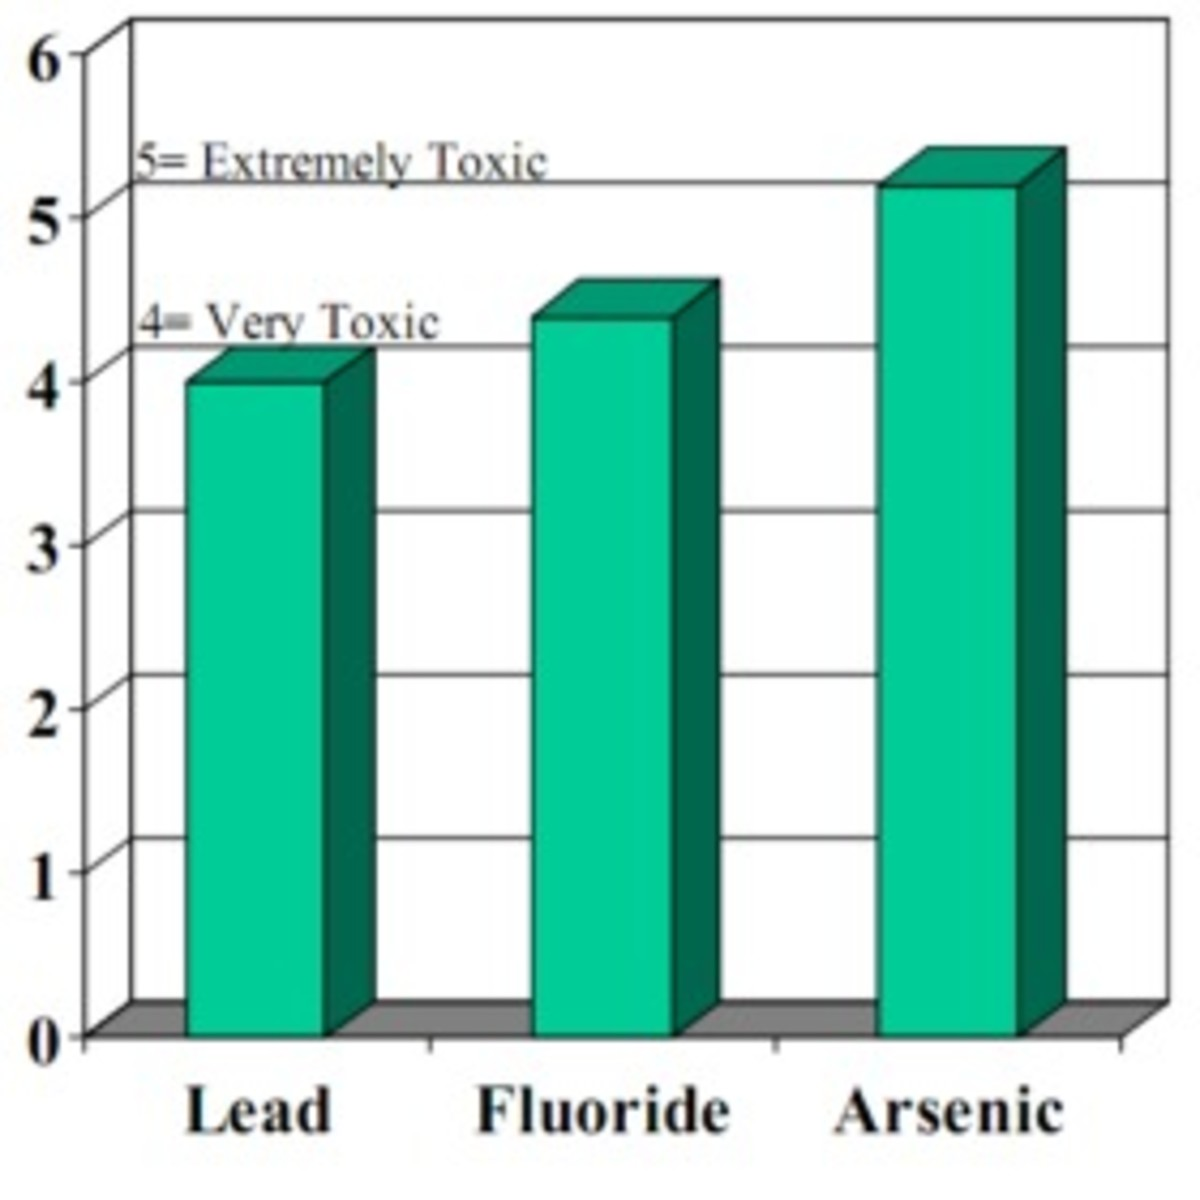 Picture courtesy of http://www.gaia-health.com/articles51/000081-Fluoridated-Salt.shtml